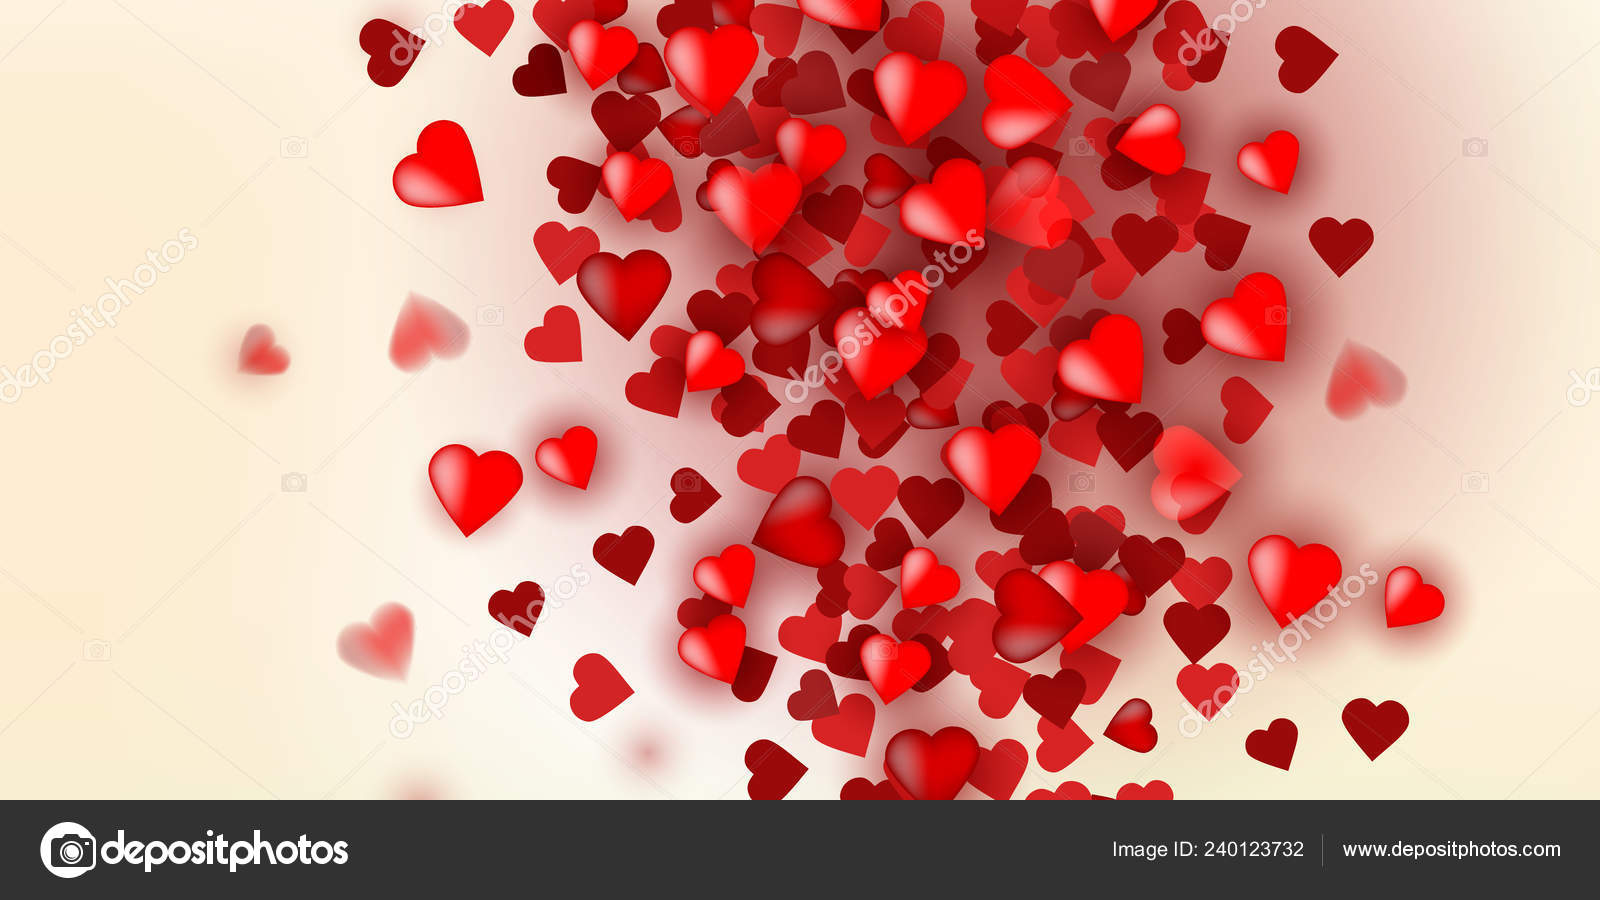 Vector Illustration With Red Love Hearts On Vintage Background Stock Photo C Wonderyusya 240123732